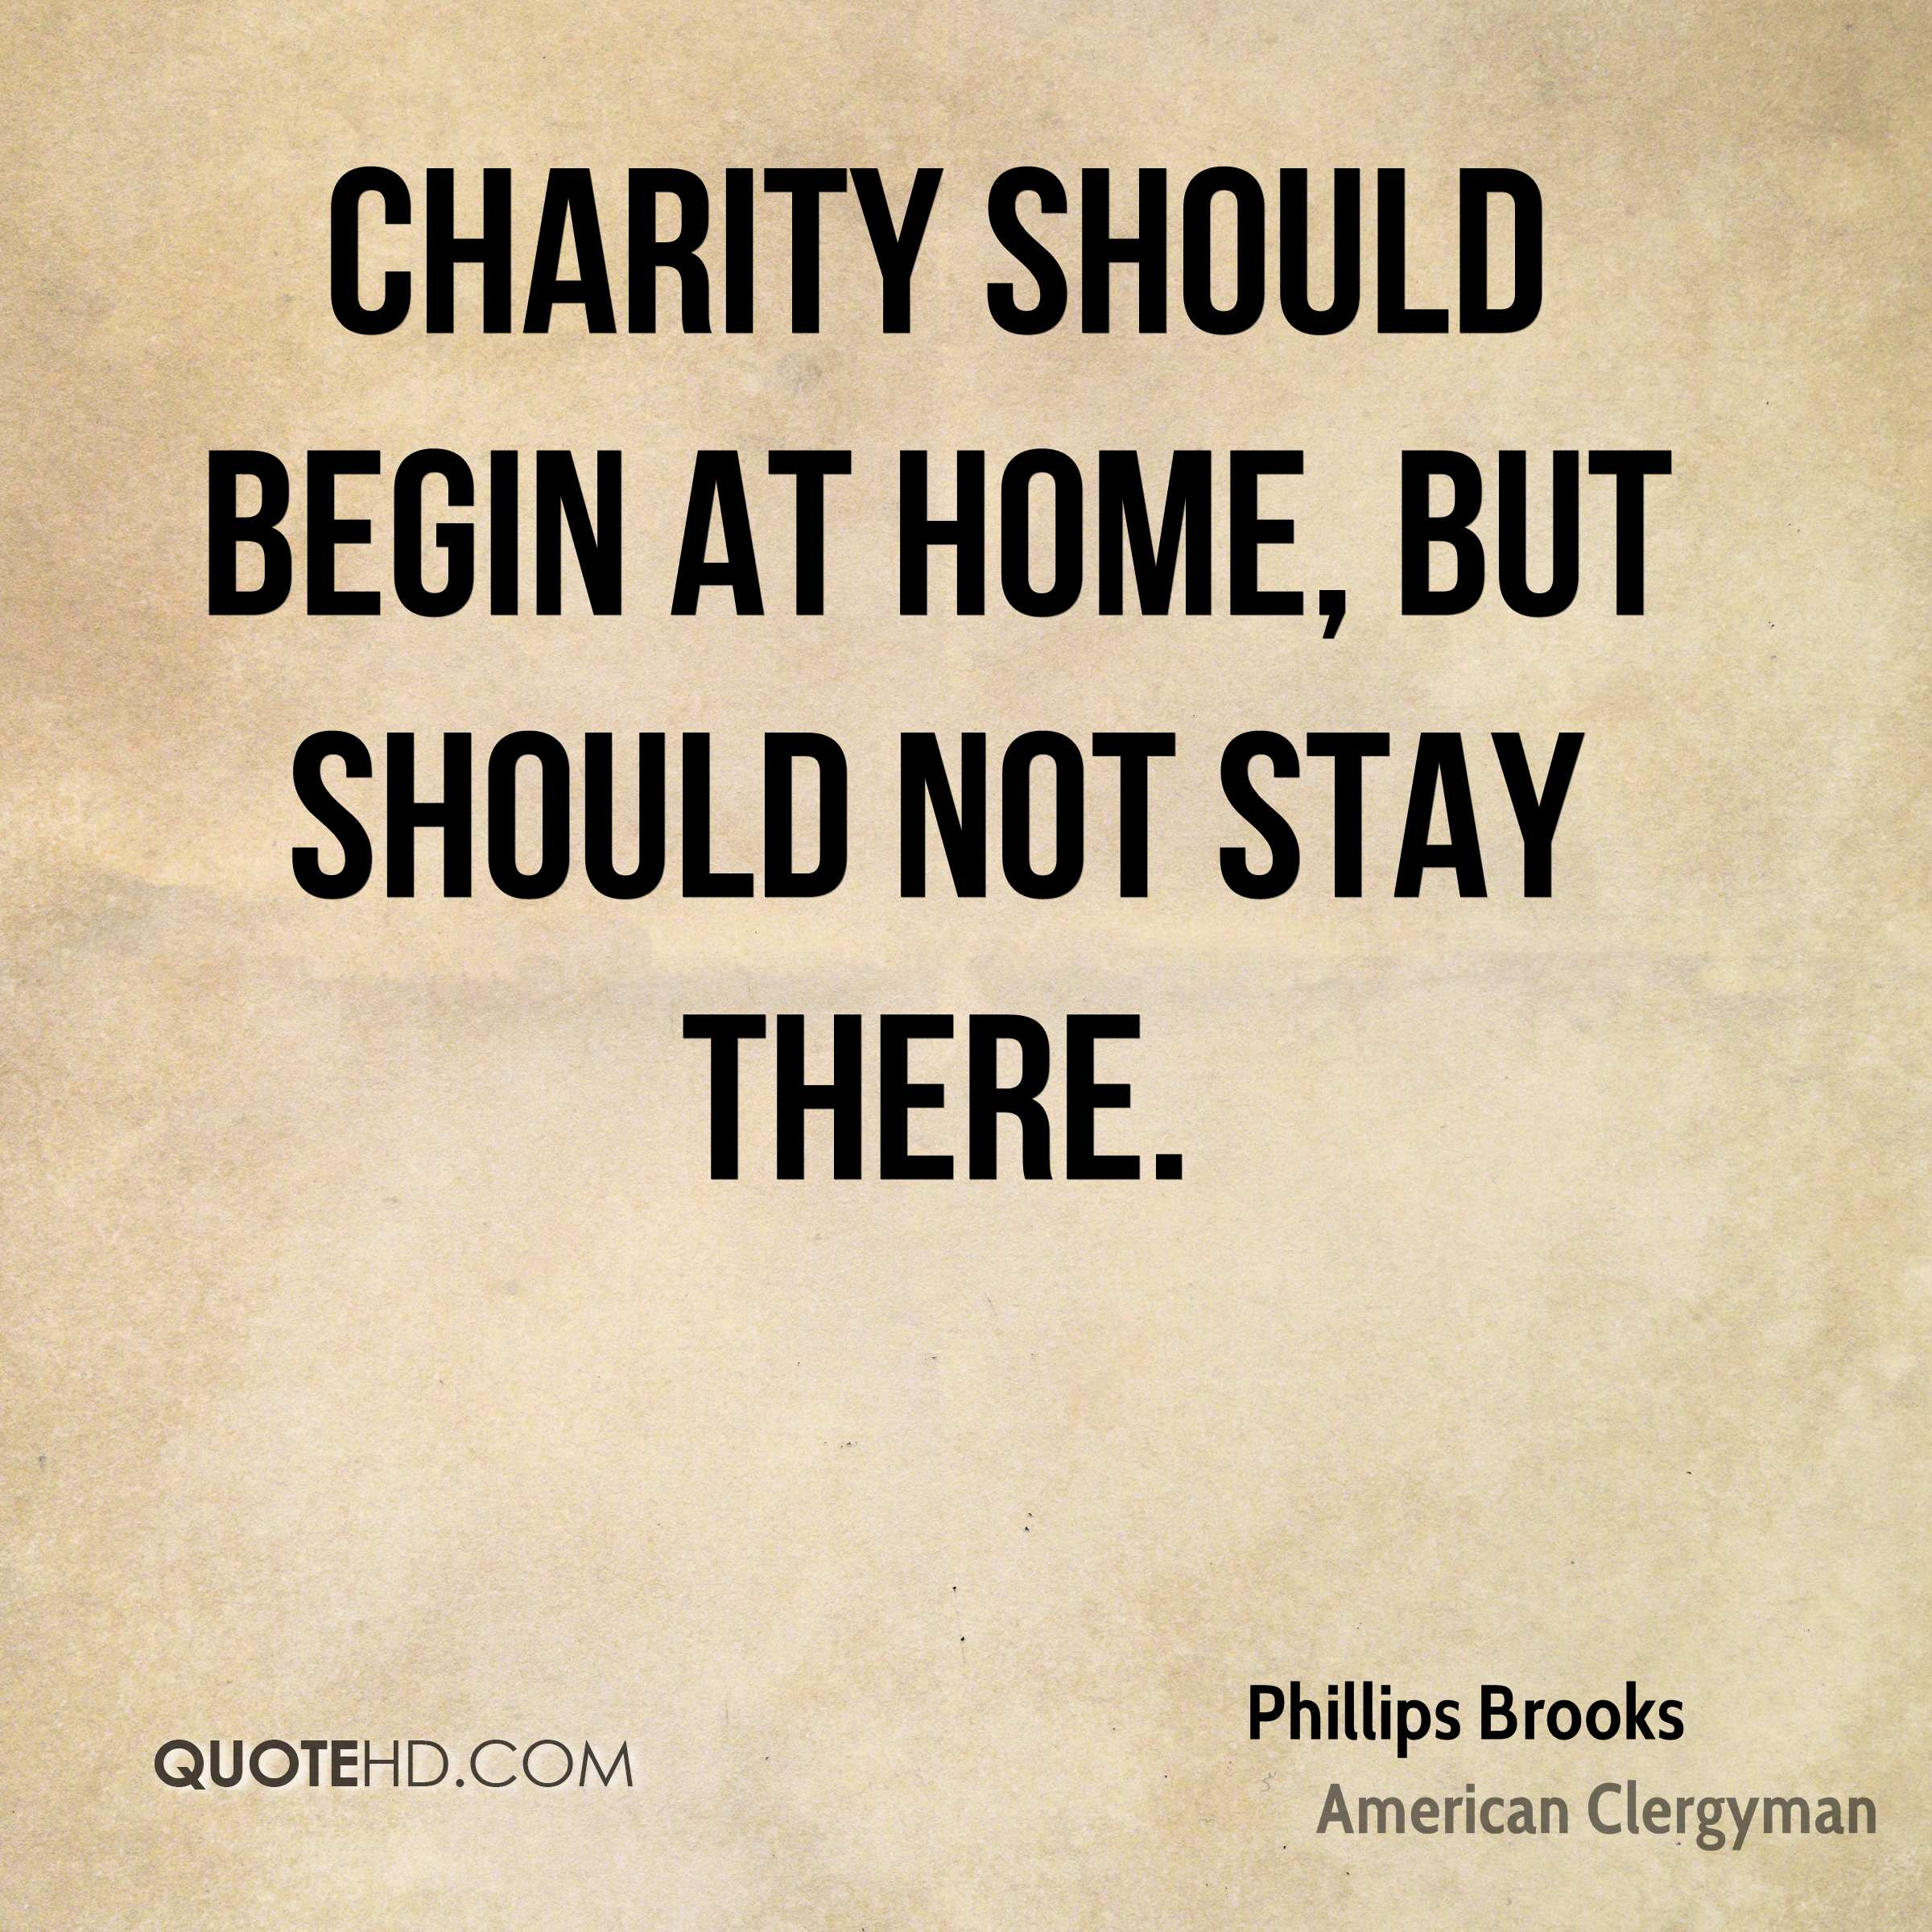 Quotes About Charity Impressive Phillips Brooks Home Quotes  Quotehd